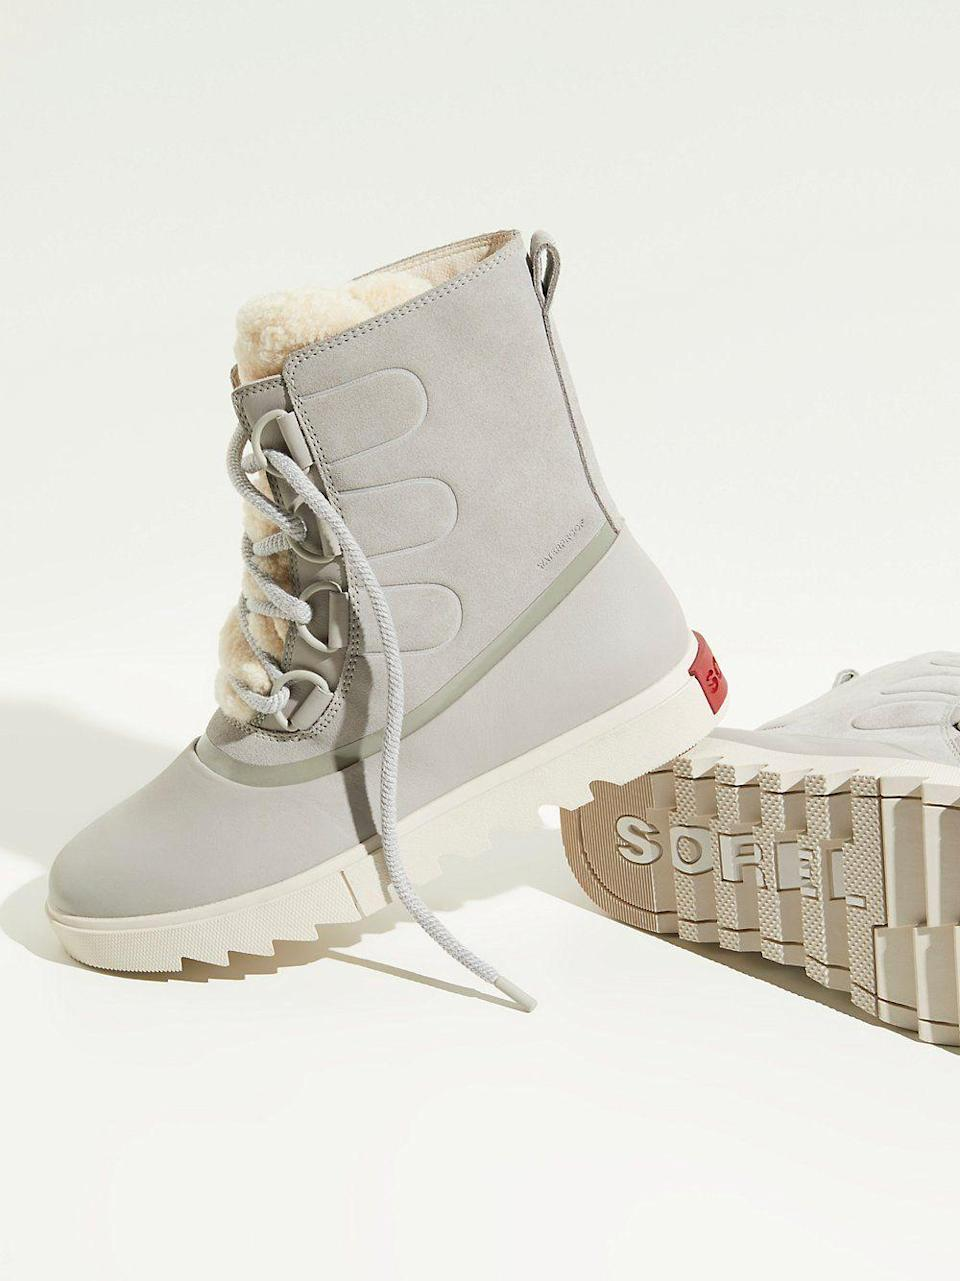 """<p><strong>Sorel</strong></p><p>freepeople.com</p><p><strong>$200.00</strong></p><p><a href=""""https://go.redirectingat.com?id=74968X1596630&url=https%3A%2F%2Fwww.freepeople.com%2Fshop%2Fjoan-of-arctic-next-lite-boots%2F&sref=https%3A%2F%2Fwww.marieclaire.com%2Ffashion%2Fg3388%2Fsnow-boots-for-women%2F"""" rel=""""nofollow noopener"""" target=""""_blank"""" data-ylk=""""slk:SHOP IT"""" class=""""link rapid-noclick-resp"""">SHOP IT</a></p><p>You have enough black ankle boots to last you through the season and are in search of a gray shoe. Consider this an optimal pick since the snow boot is water-resistant, has a traction rubber sole, and is blessed with both a micro fleece lining and shearling trim.<br></p>"""